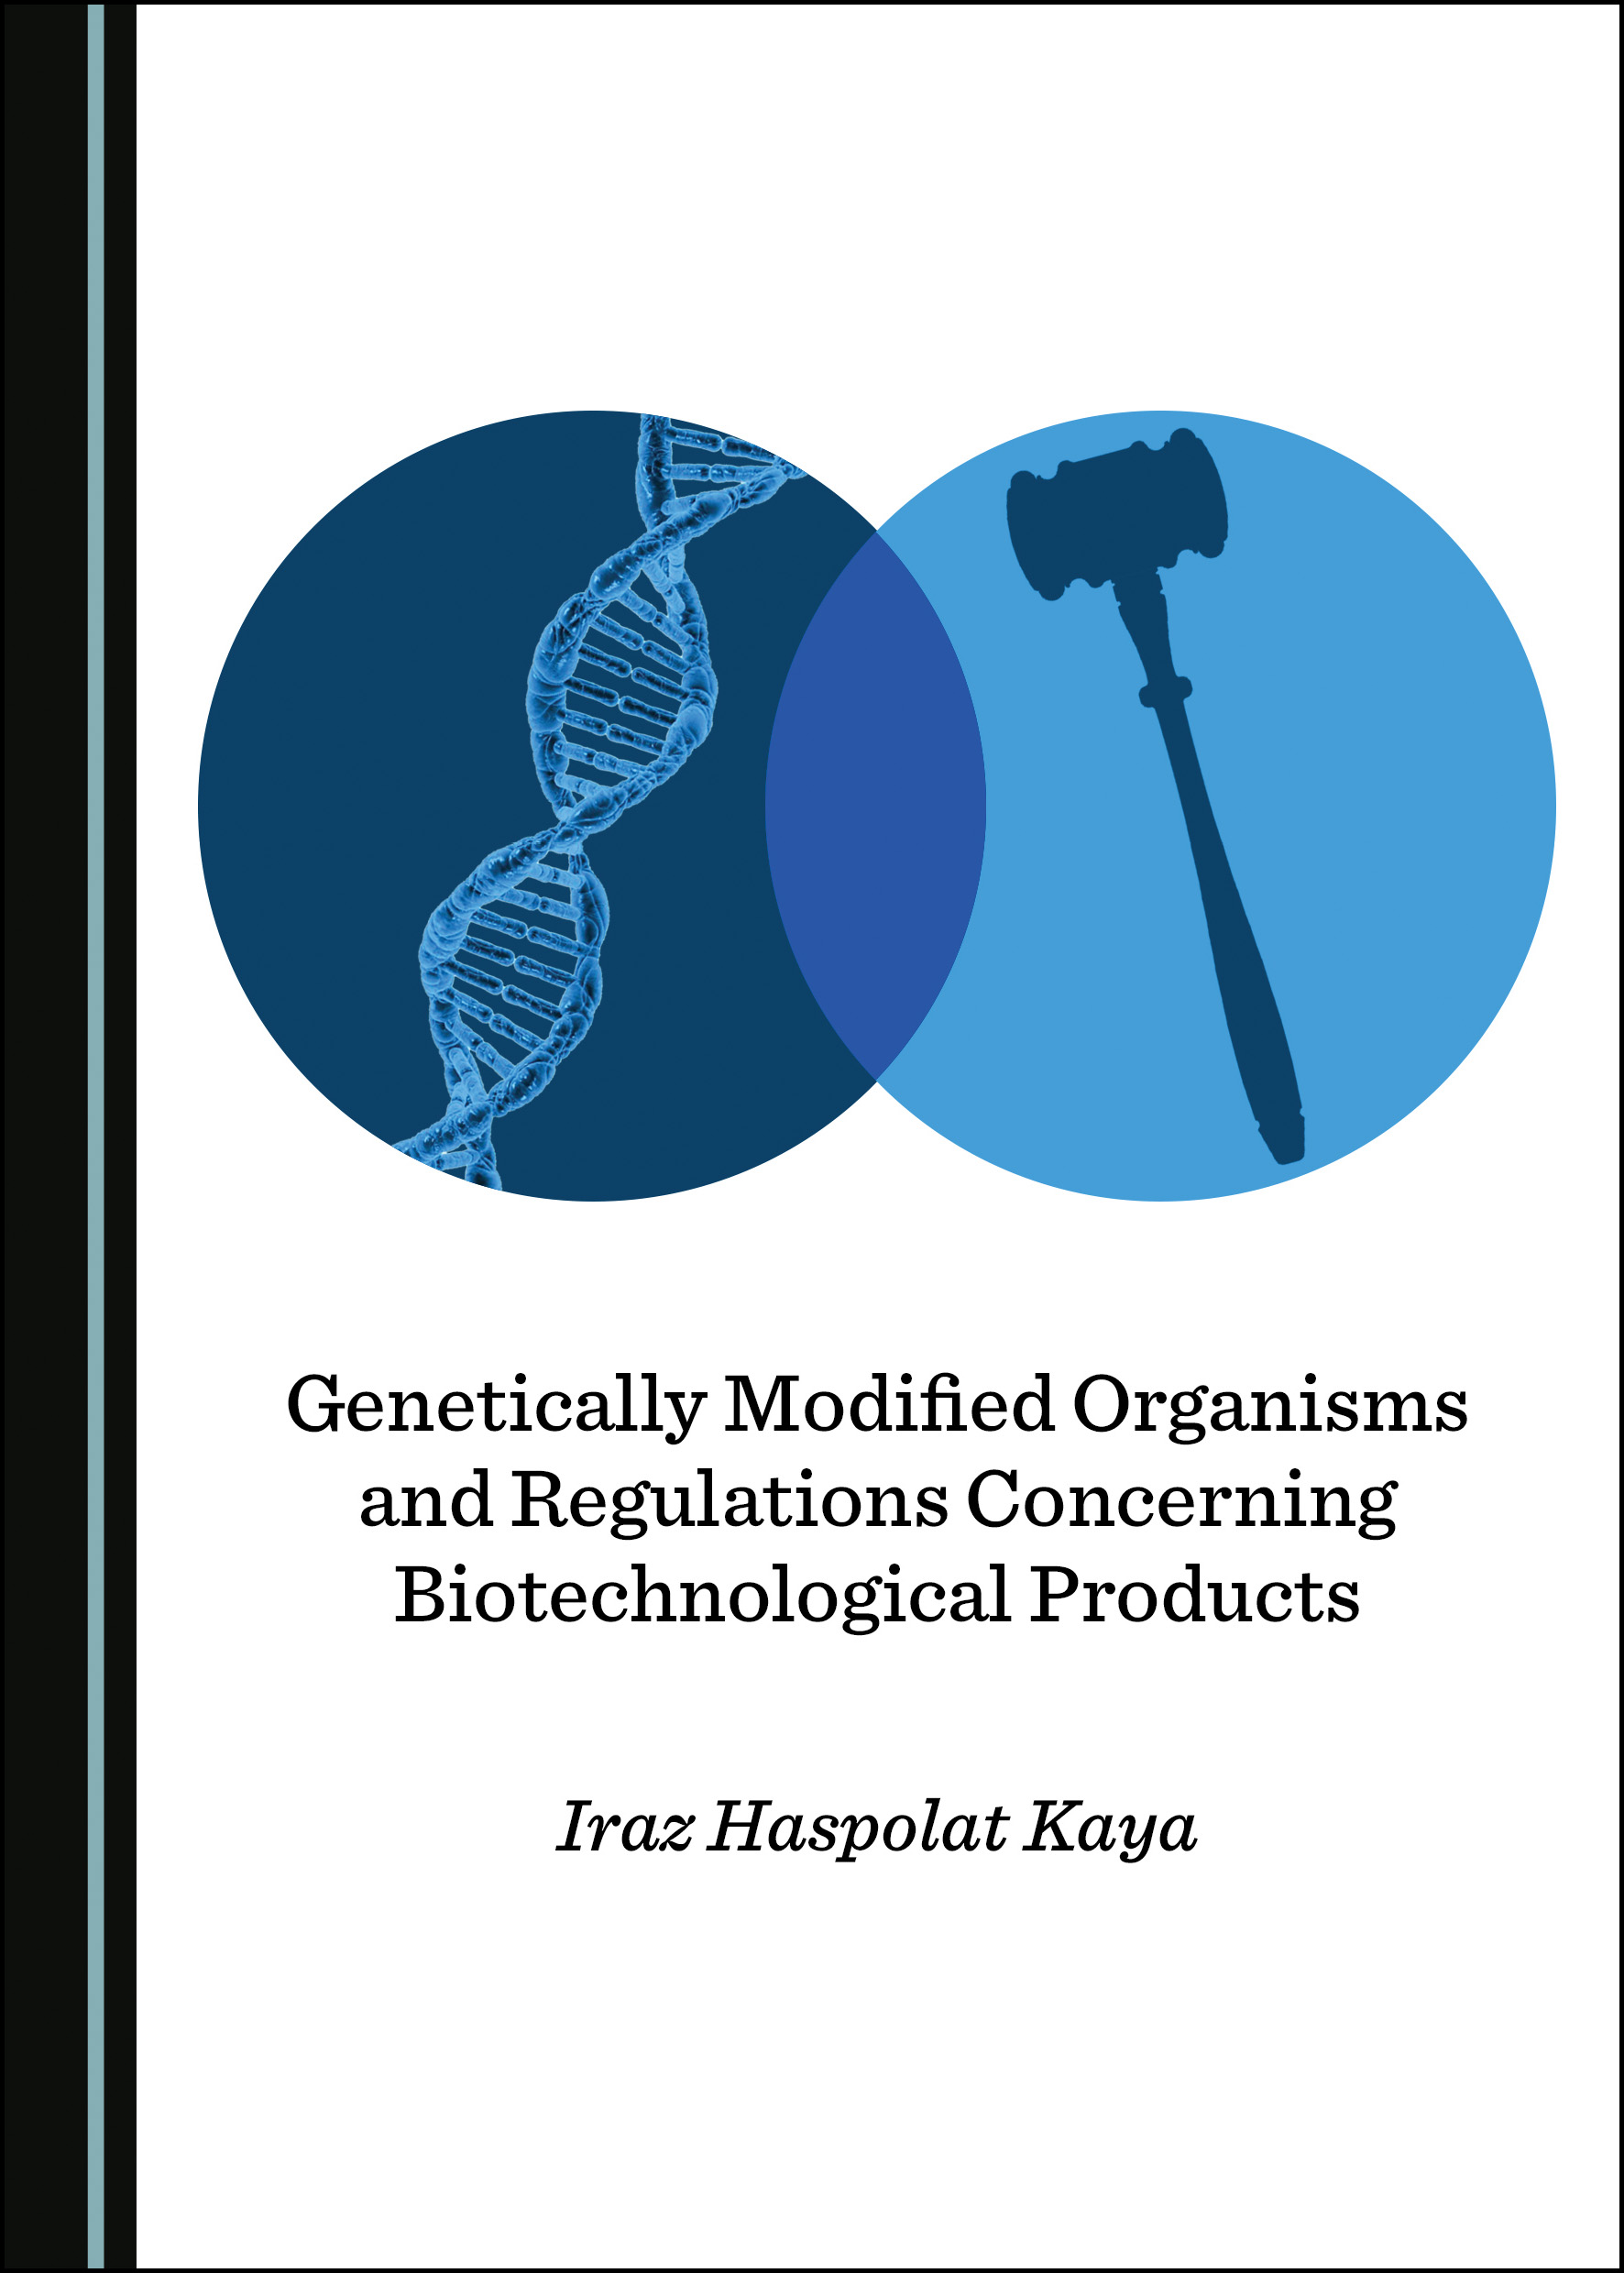 Genetically Modified Organisms and Regulations Concerning Biotechnological Products